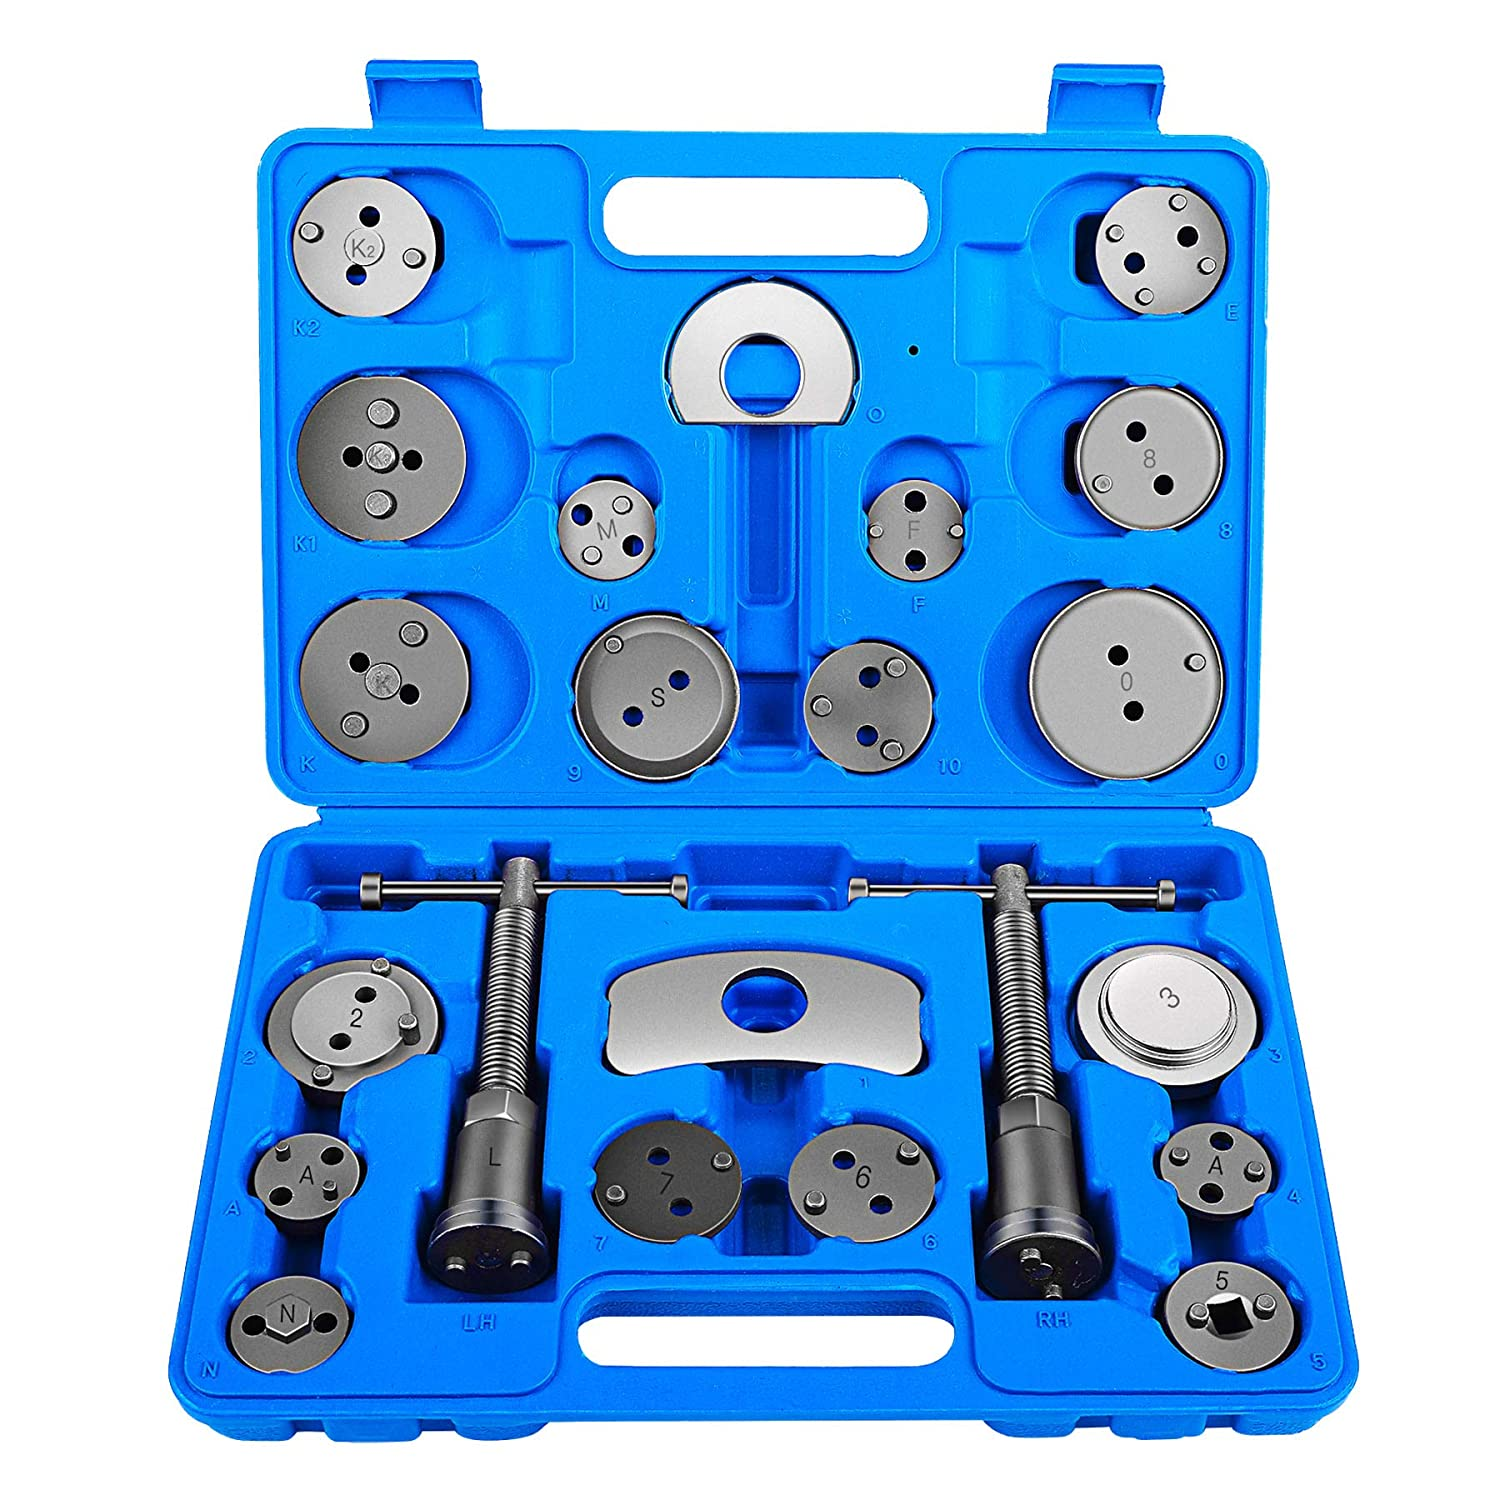 Orion Motor Tech 22pcs Heavy Duty Disc Brake Piston Caliper Compressor Tool Set and Wind Back Kit for Brake Pad Replacement, Fits Most American, European, Japanese Models